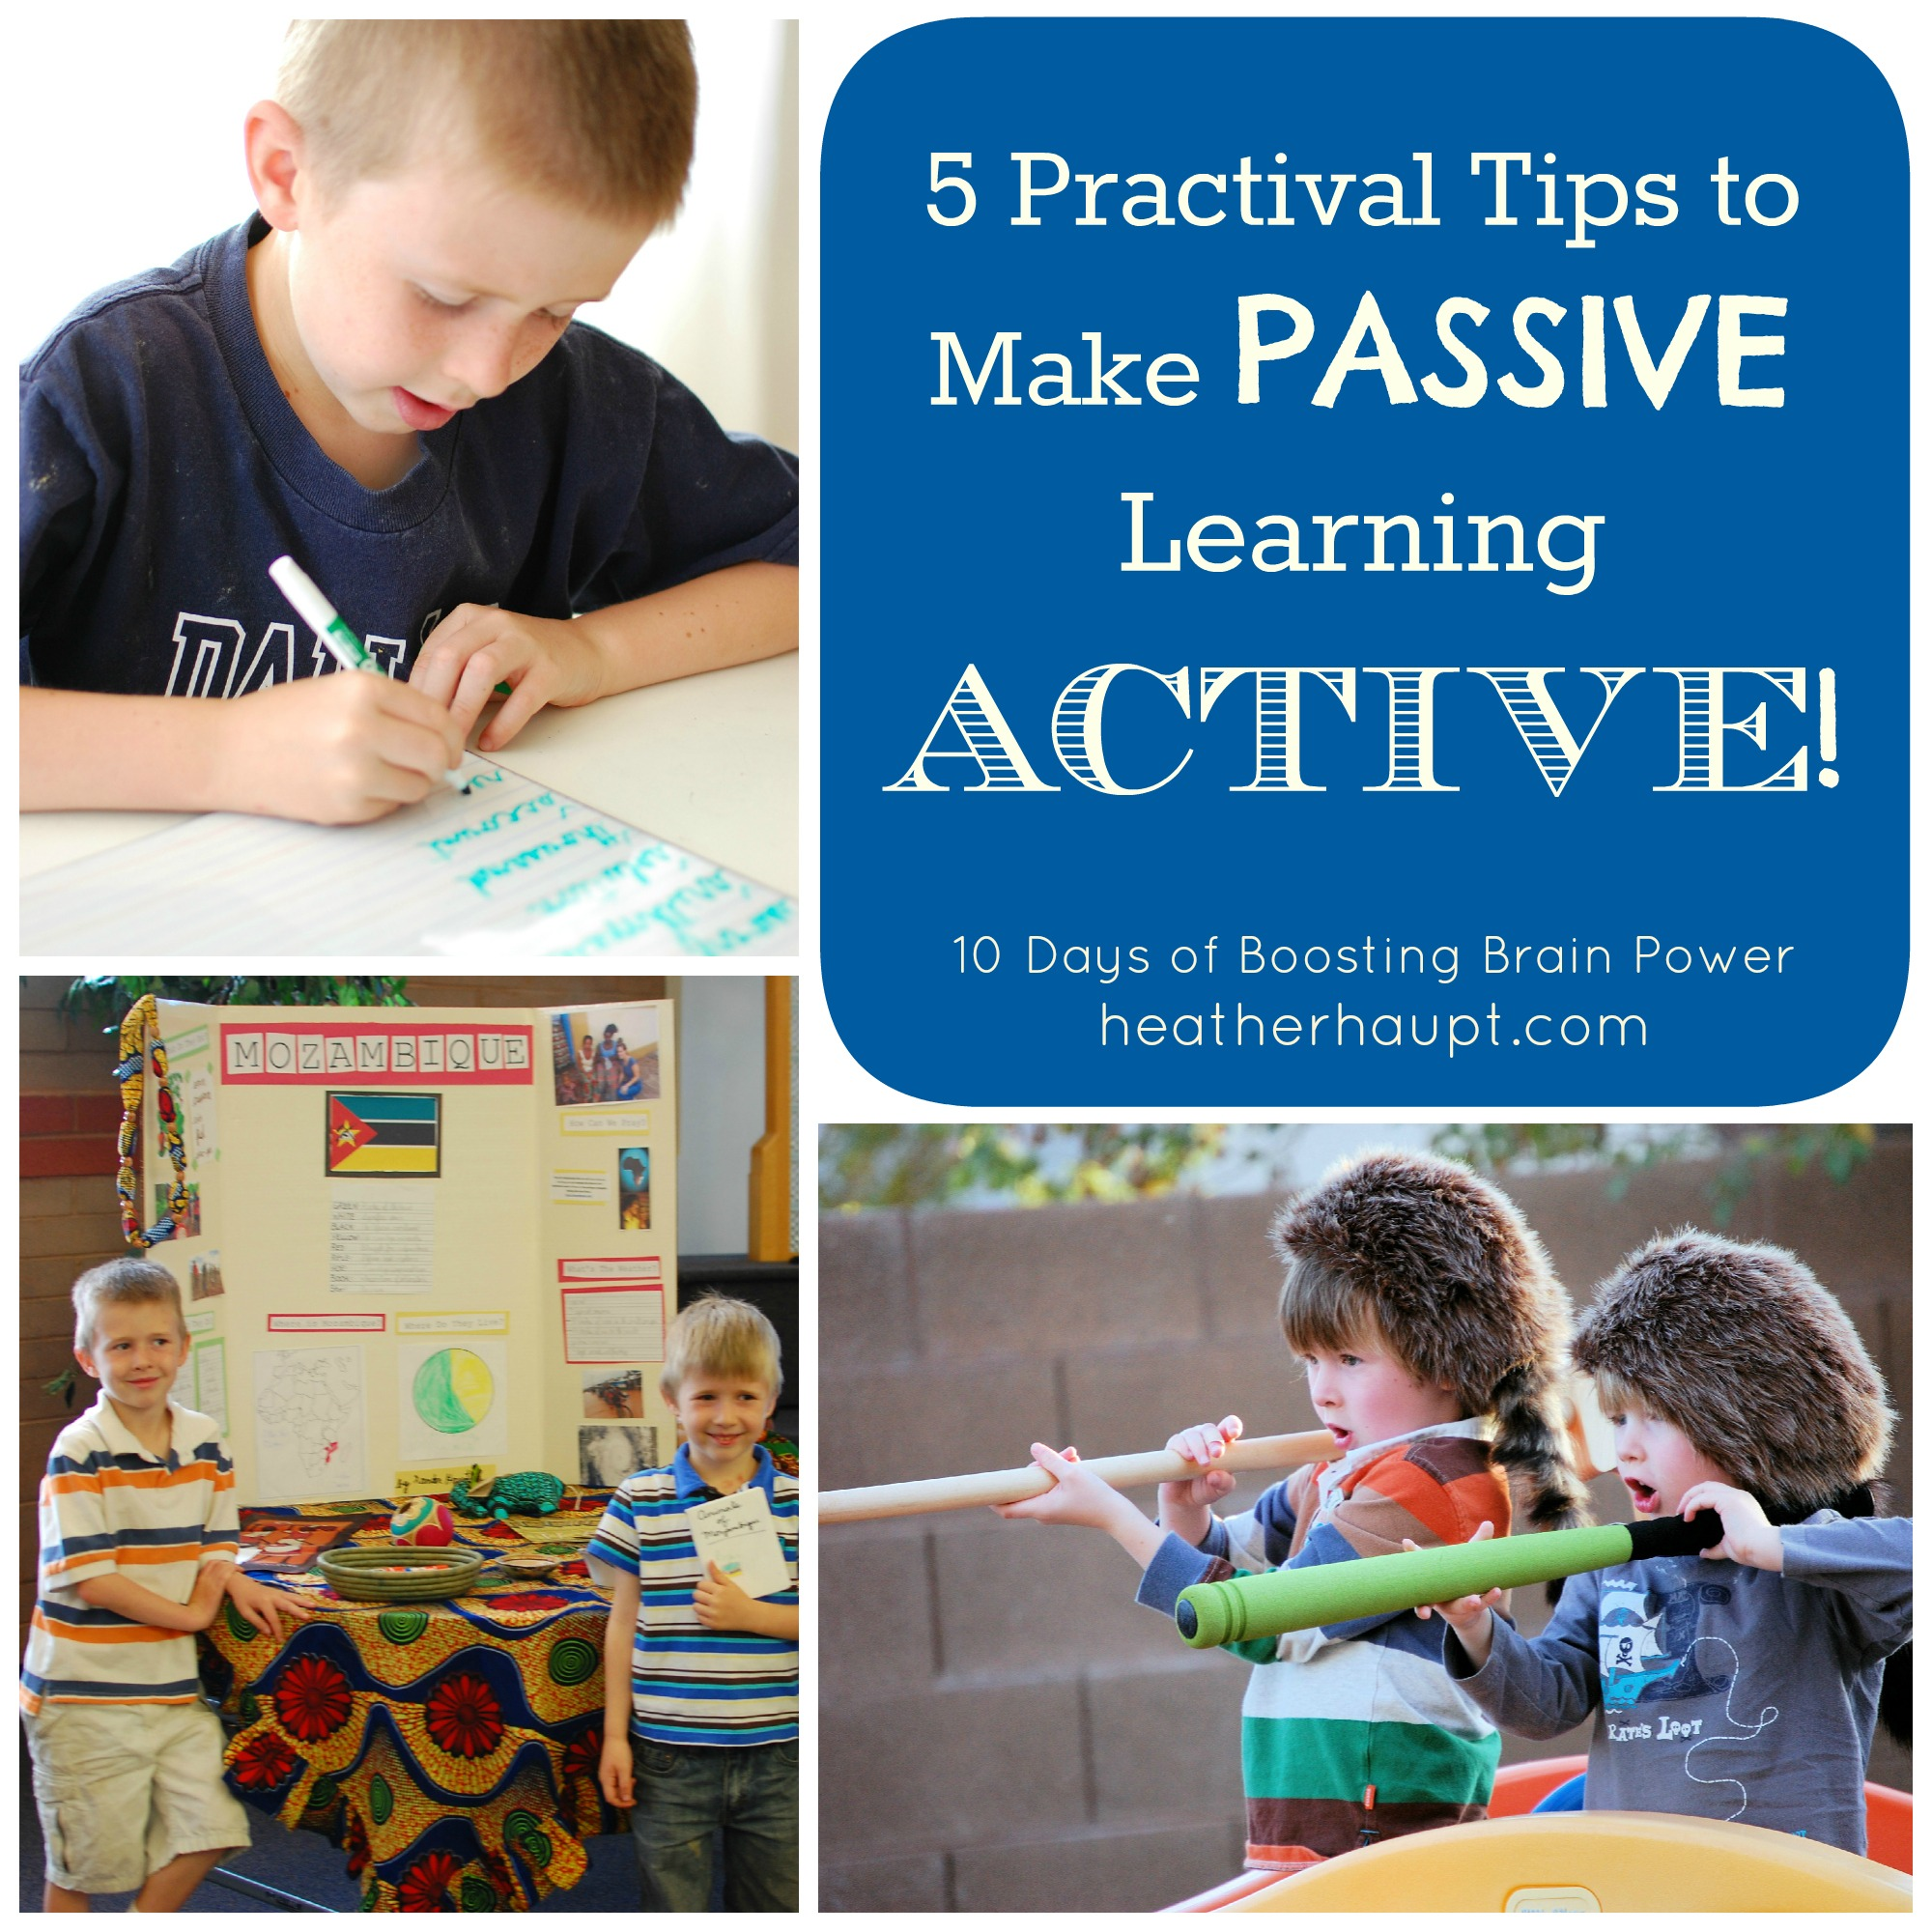 We need a varied approach! 5 great ideas to help convert passive learning to more active, engaged learning!